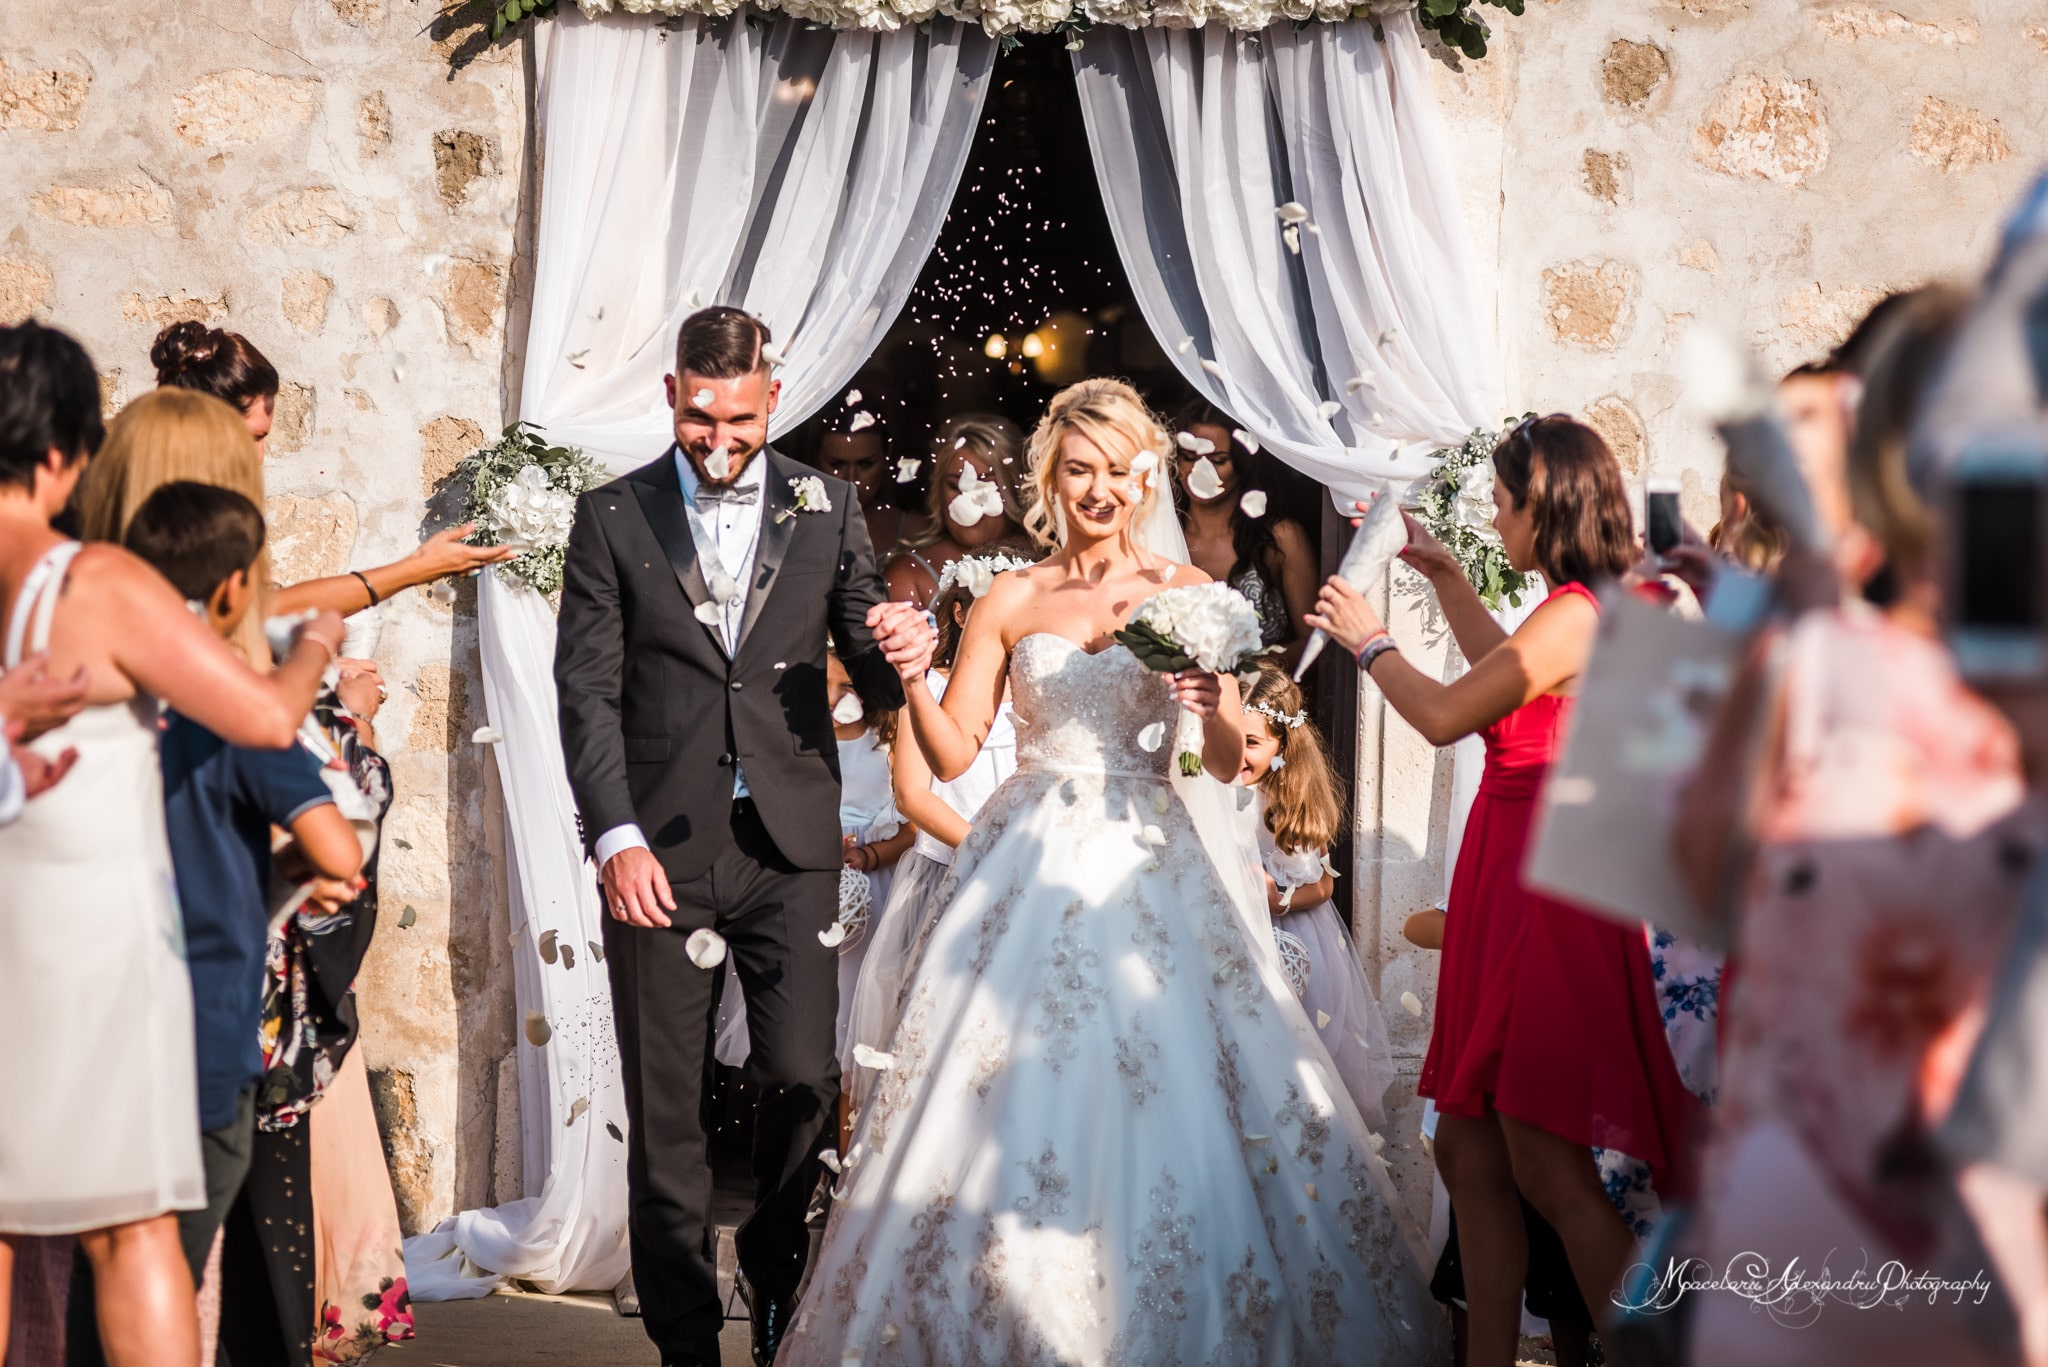 Wedding photography in Paphos - Bride and groom exit the church